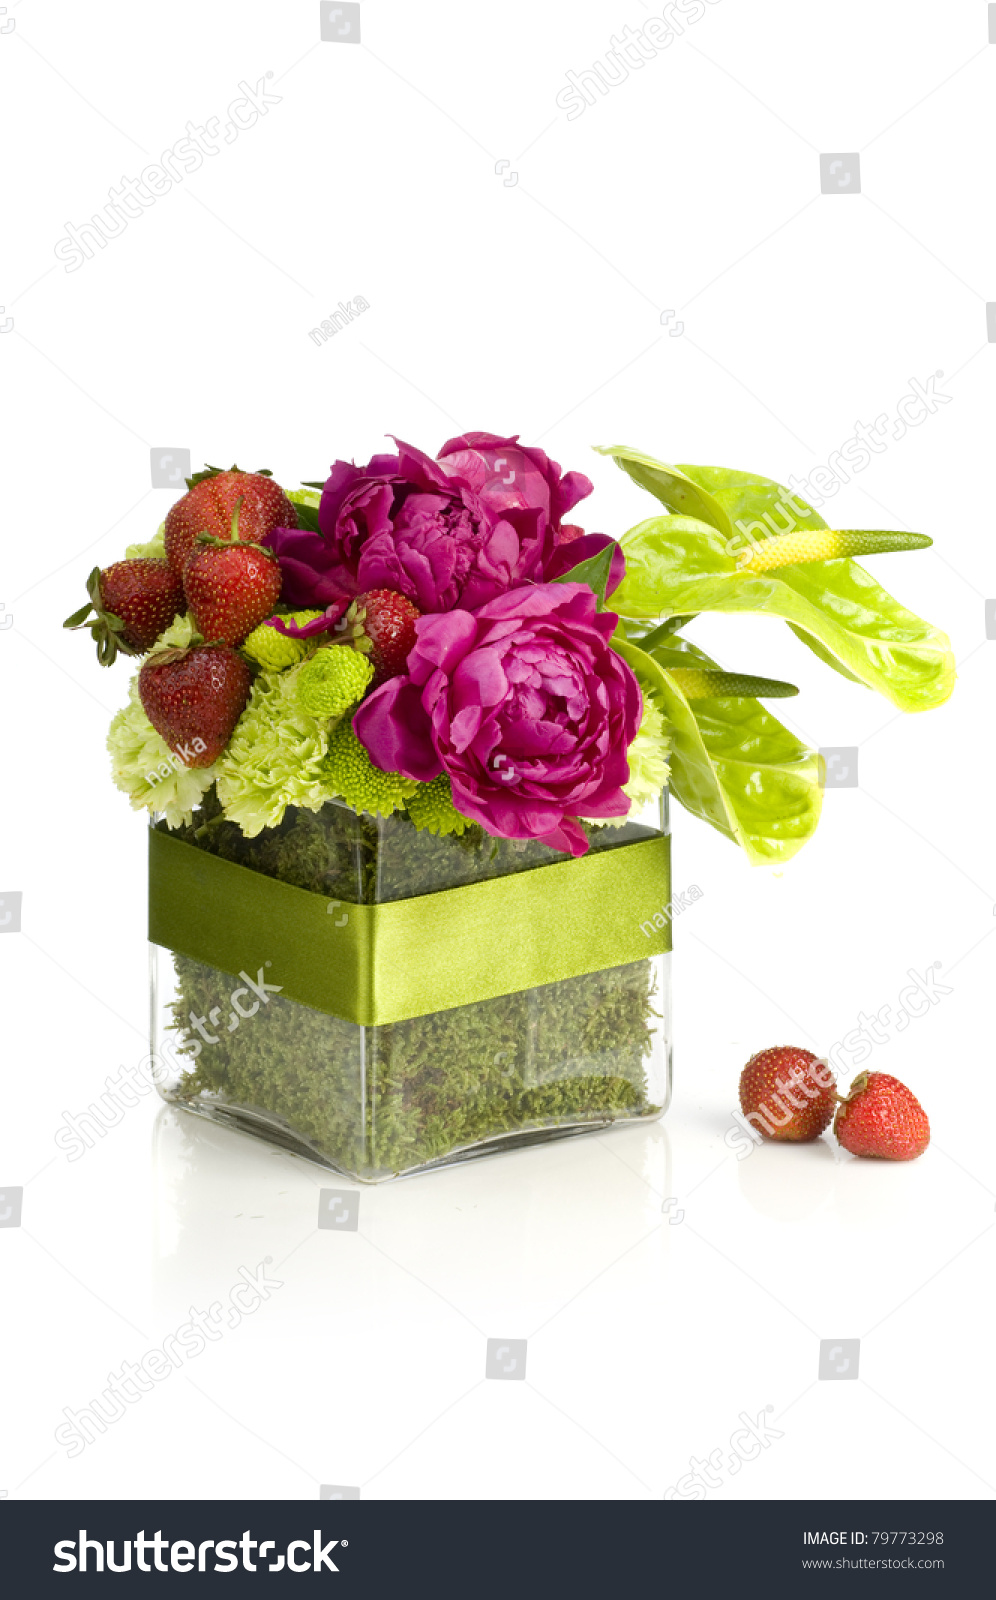 Peony Flower Bouquet Strawberry On White Stock Photo (Royalty Free ...